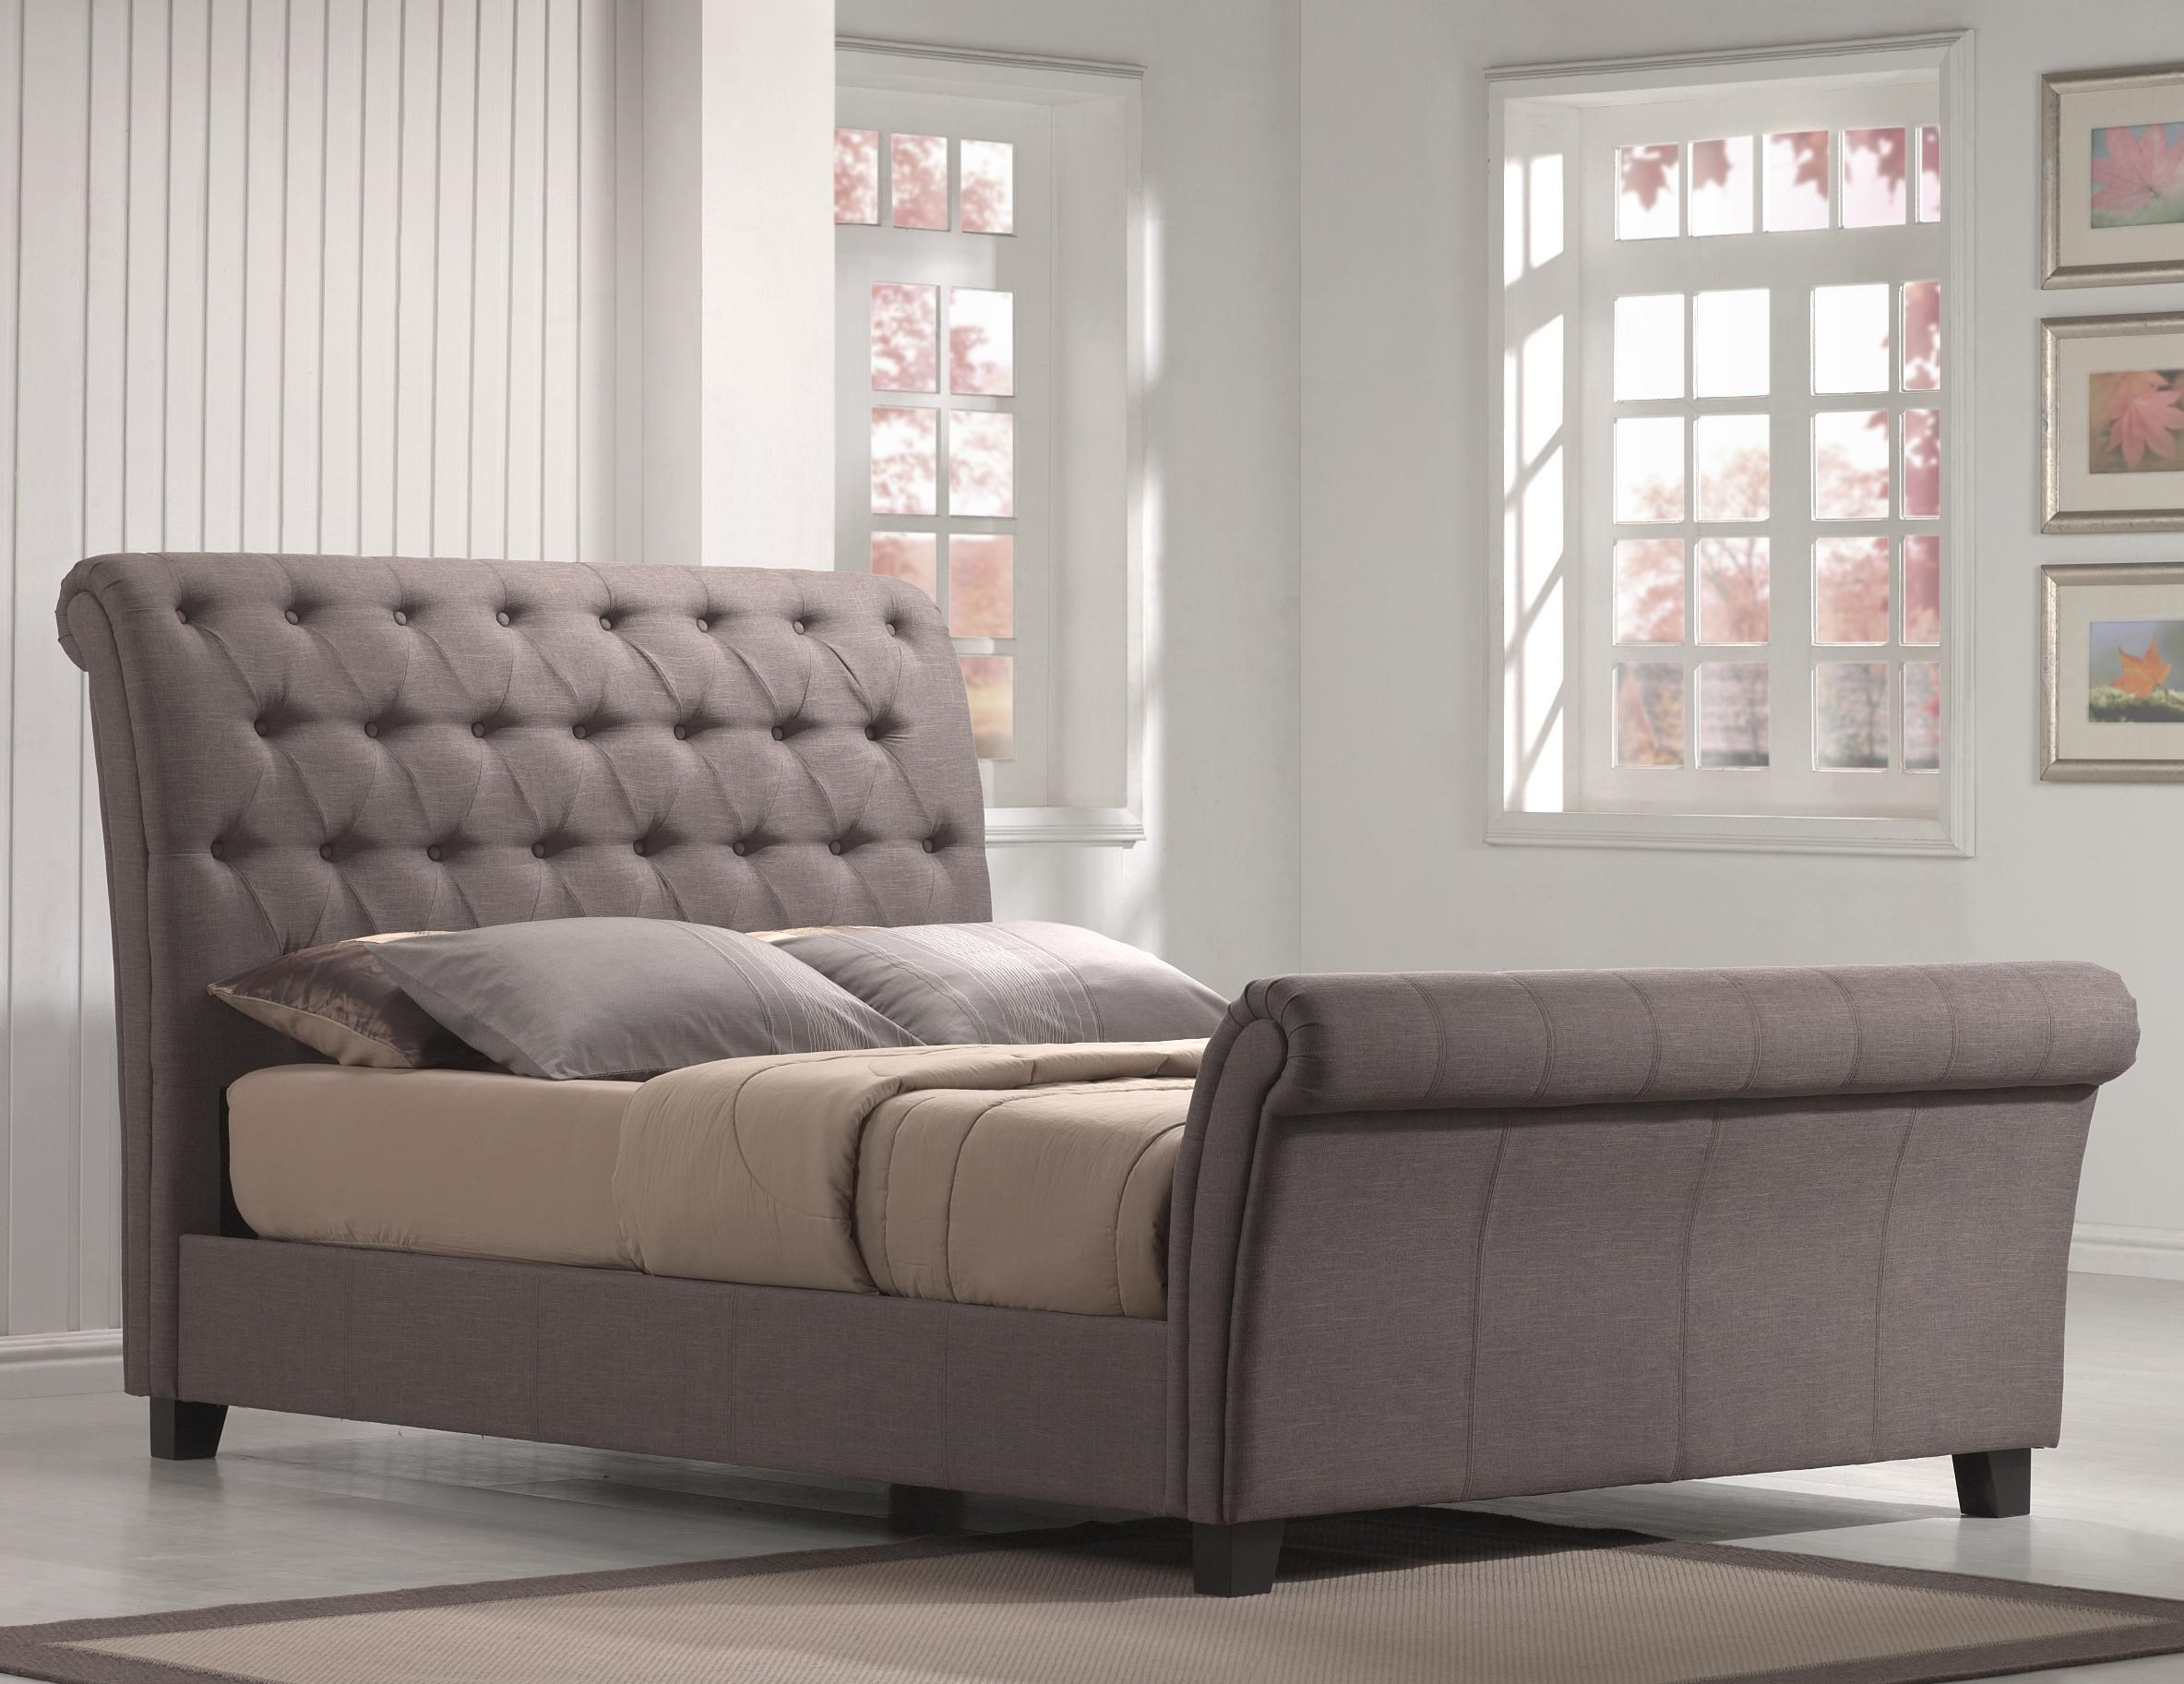 emerald innsbruck king button tufted upholstered sleigh bed - King Sleigh Bed